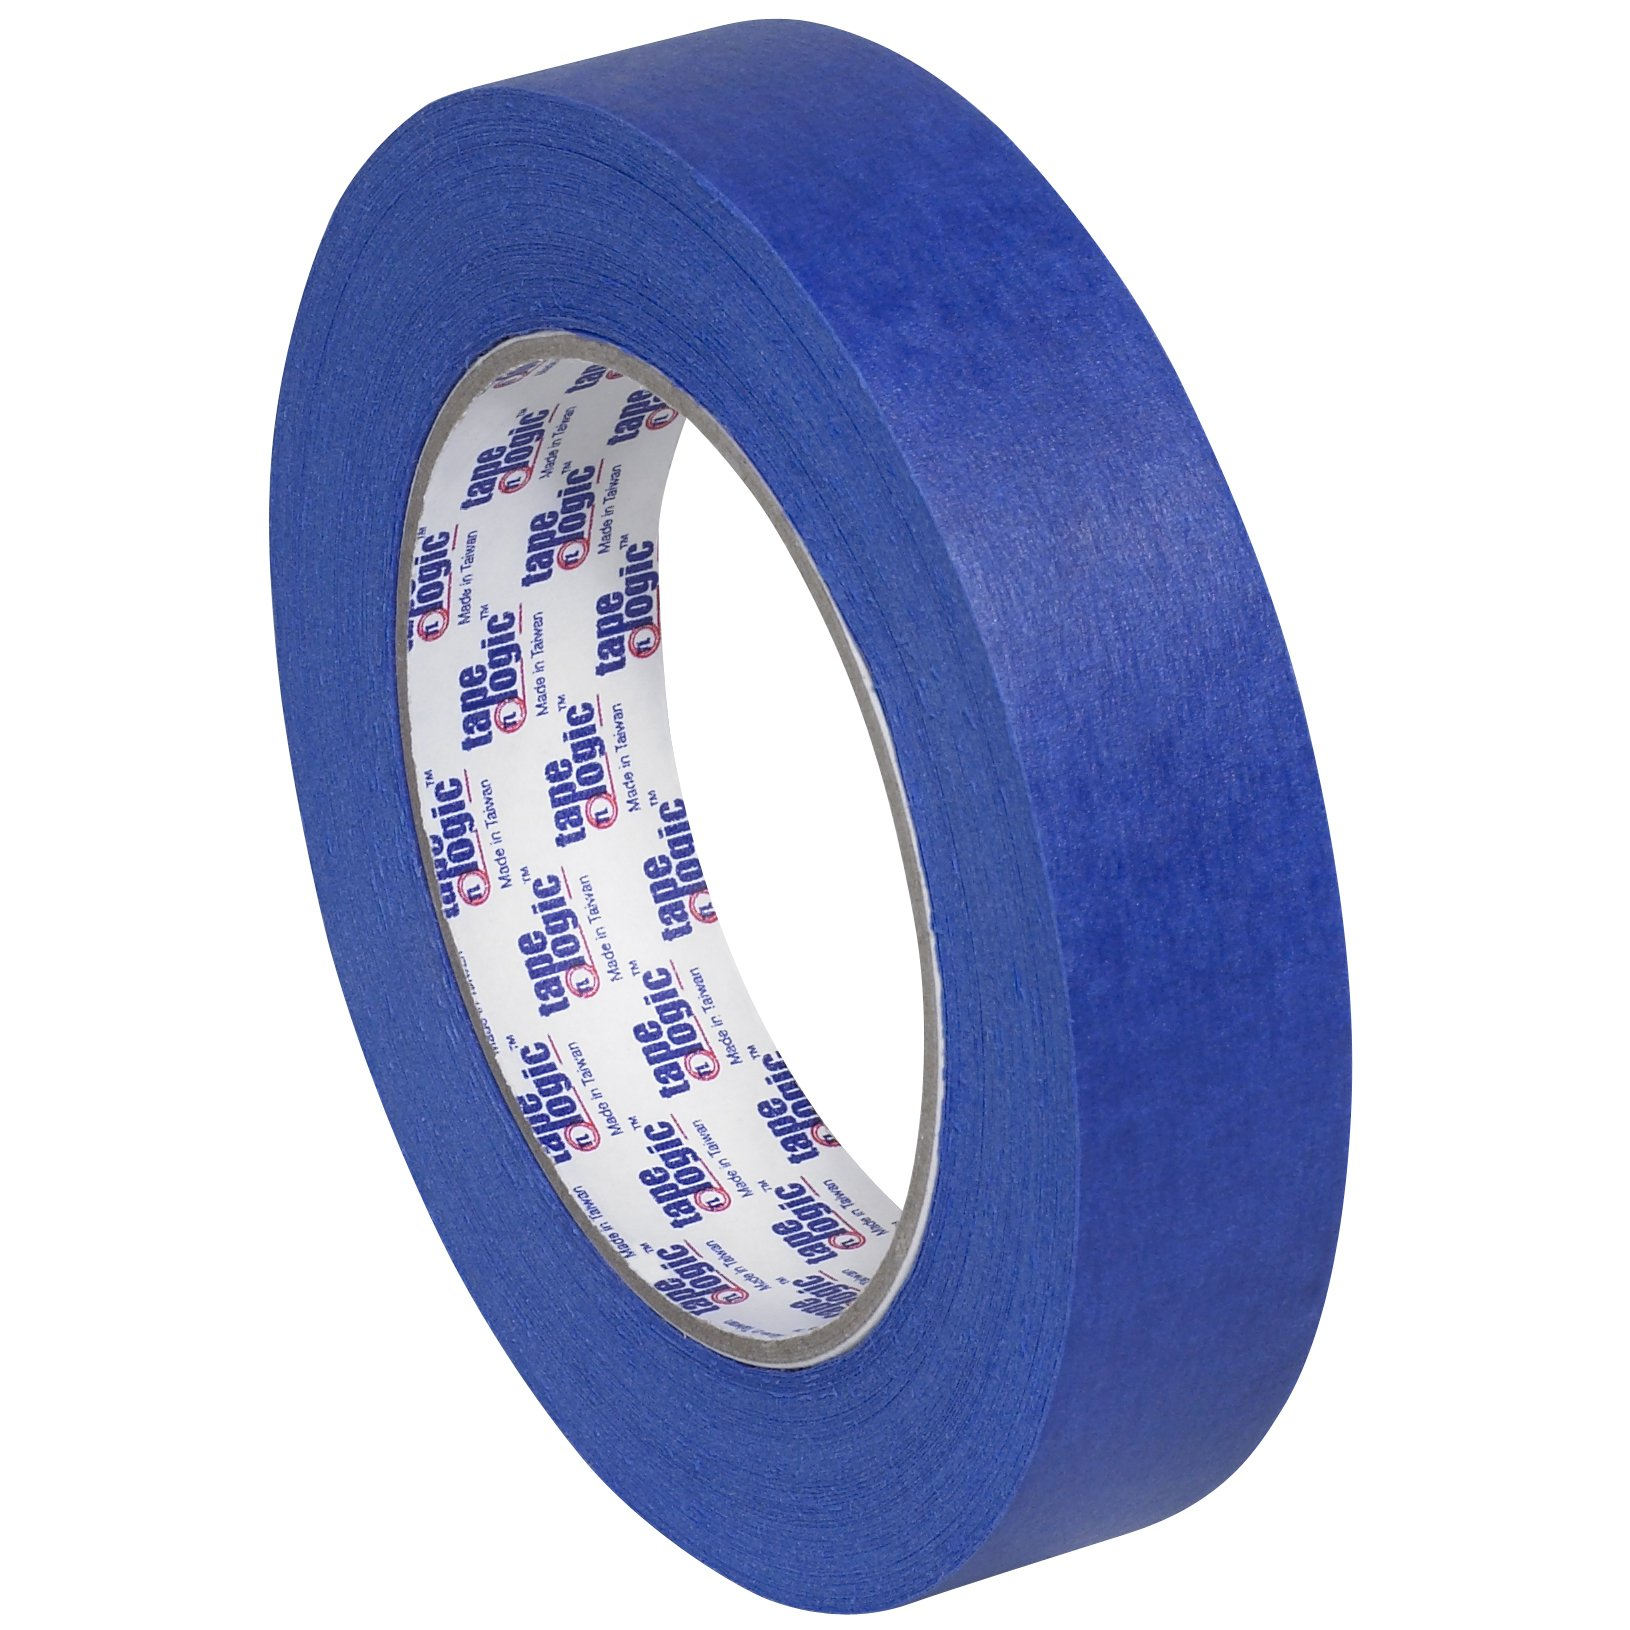 Tape Logic T9353000 Painter's Tape, 60 yds Length x 1'' Width, Blue (Case of 36)